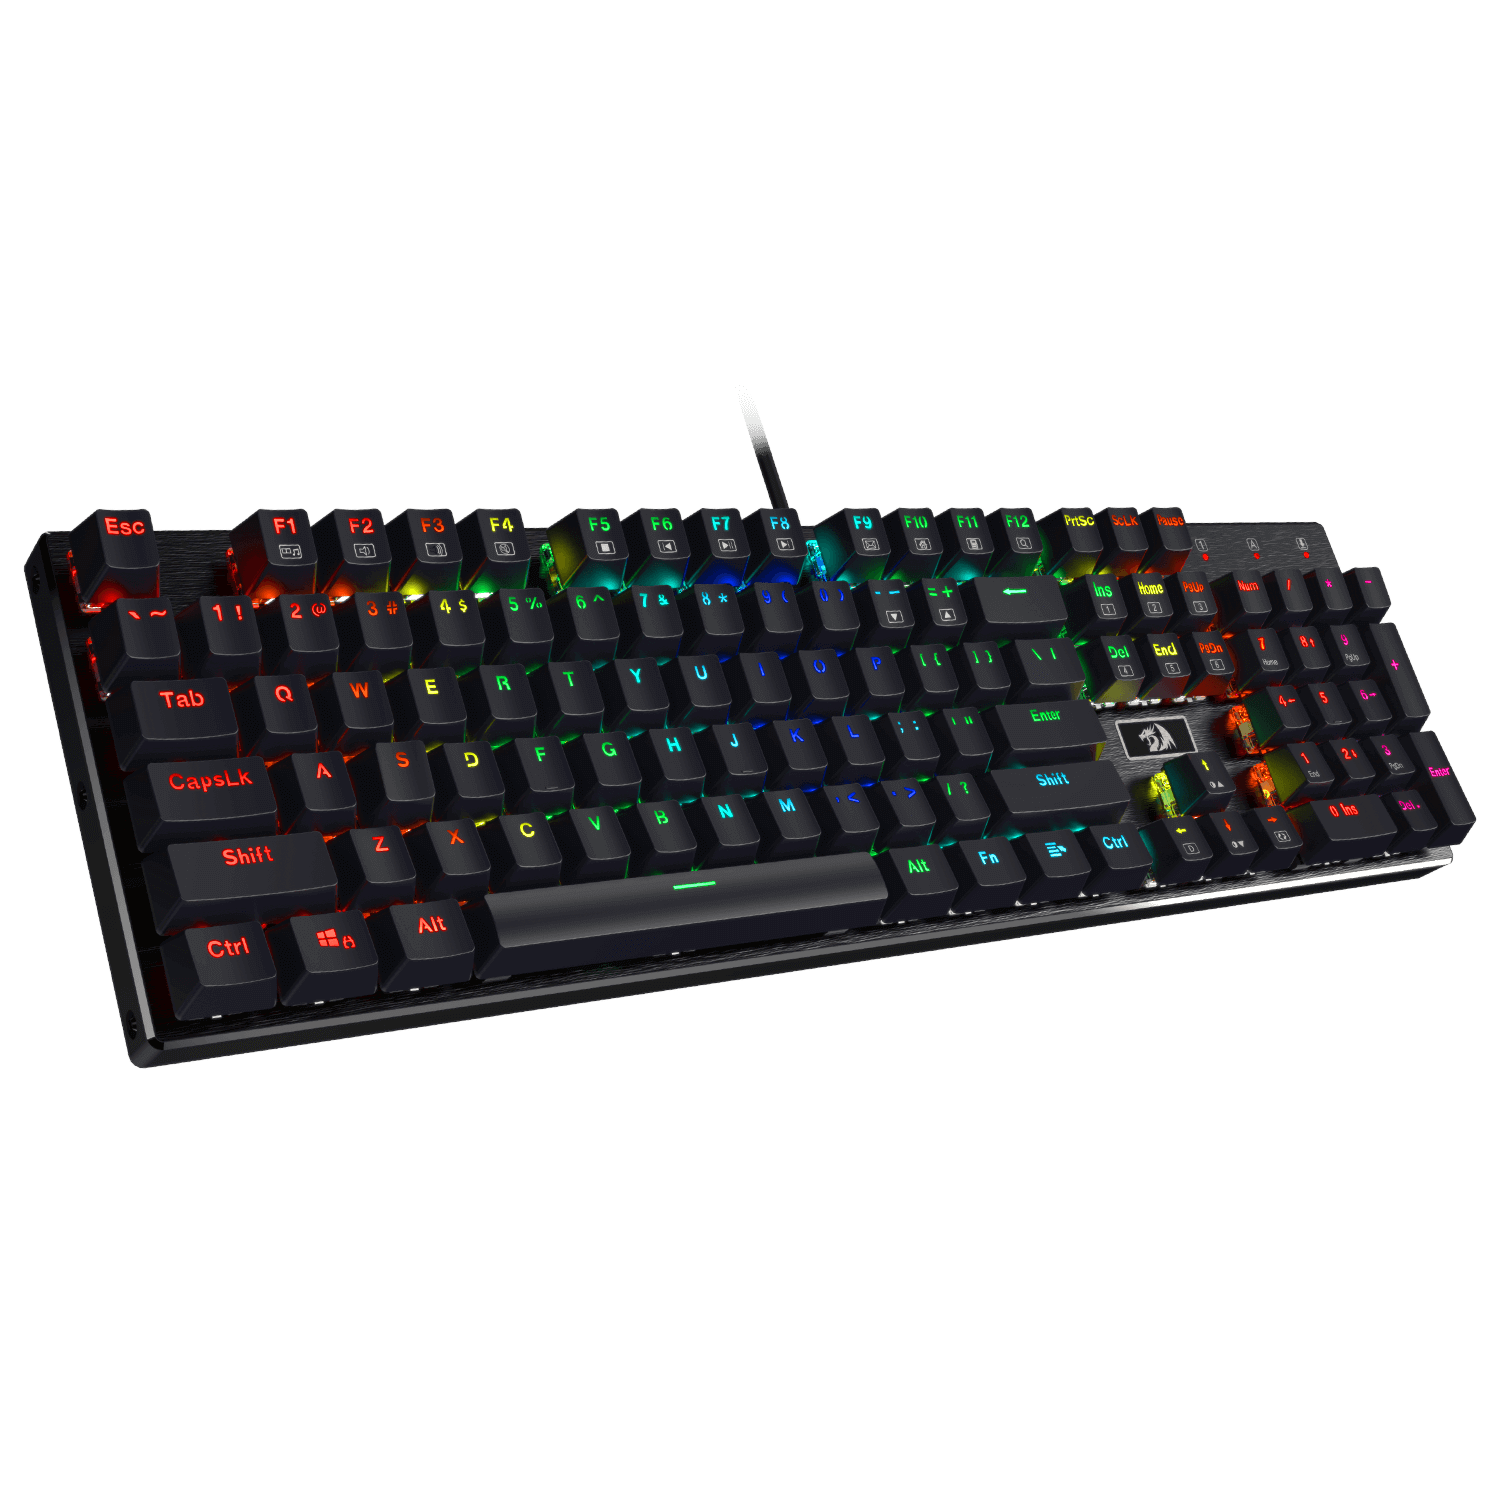 redragon k556 price